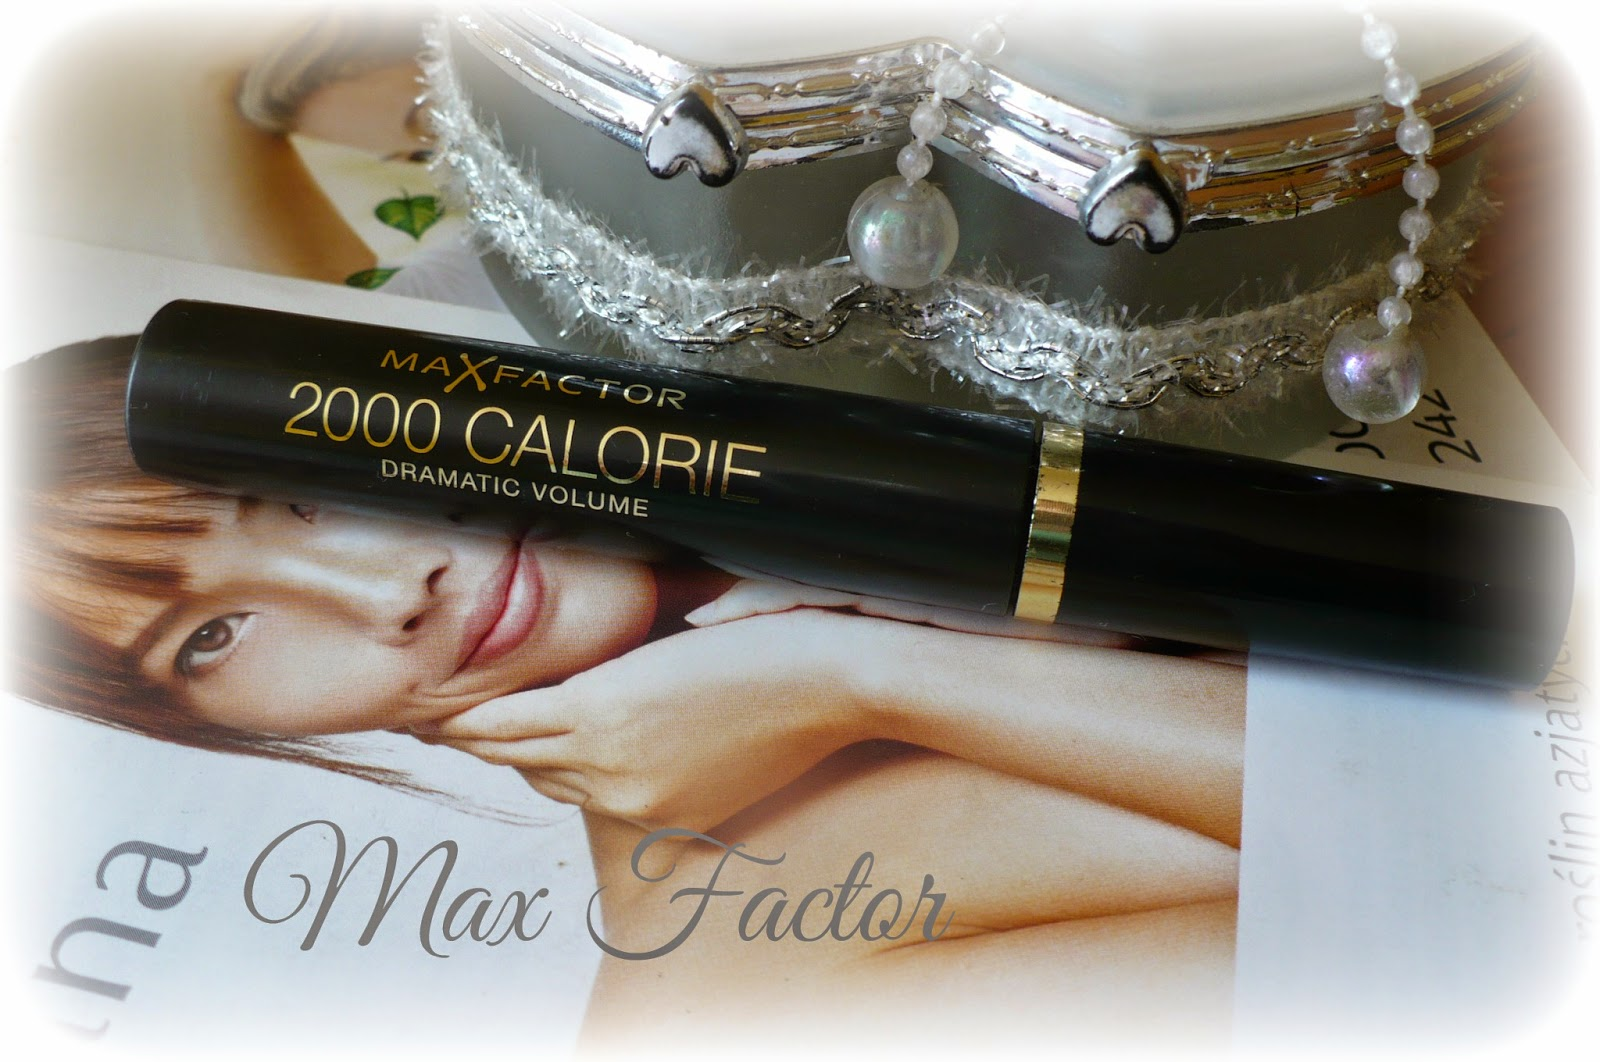 Max Factor 2000 Calorie Dramatic Volume ....